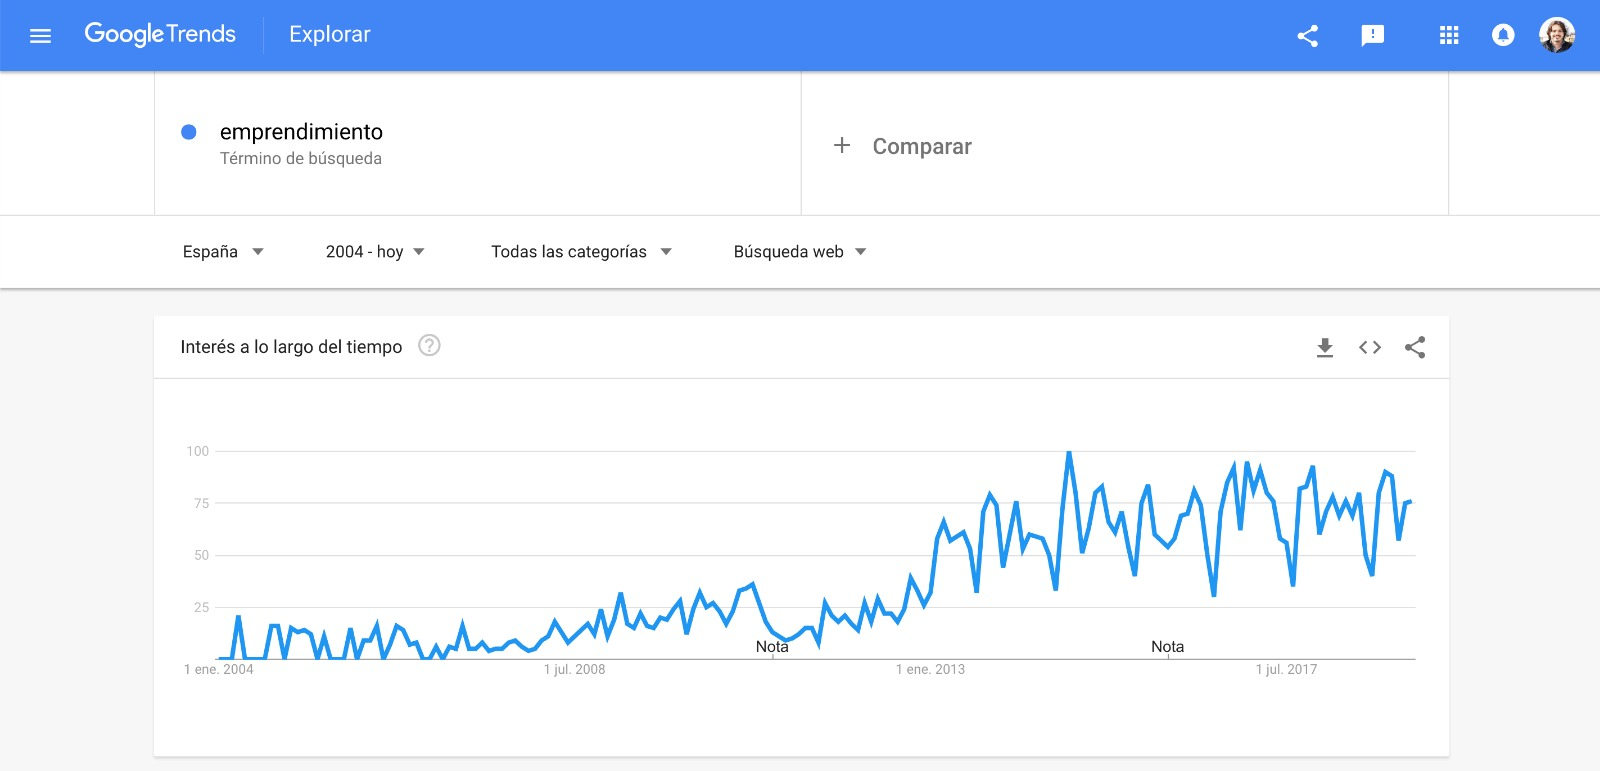 google-trends-emprendimiento